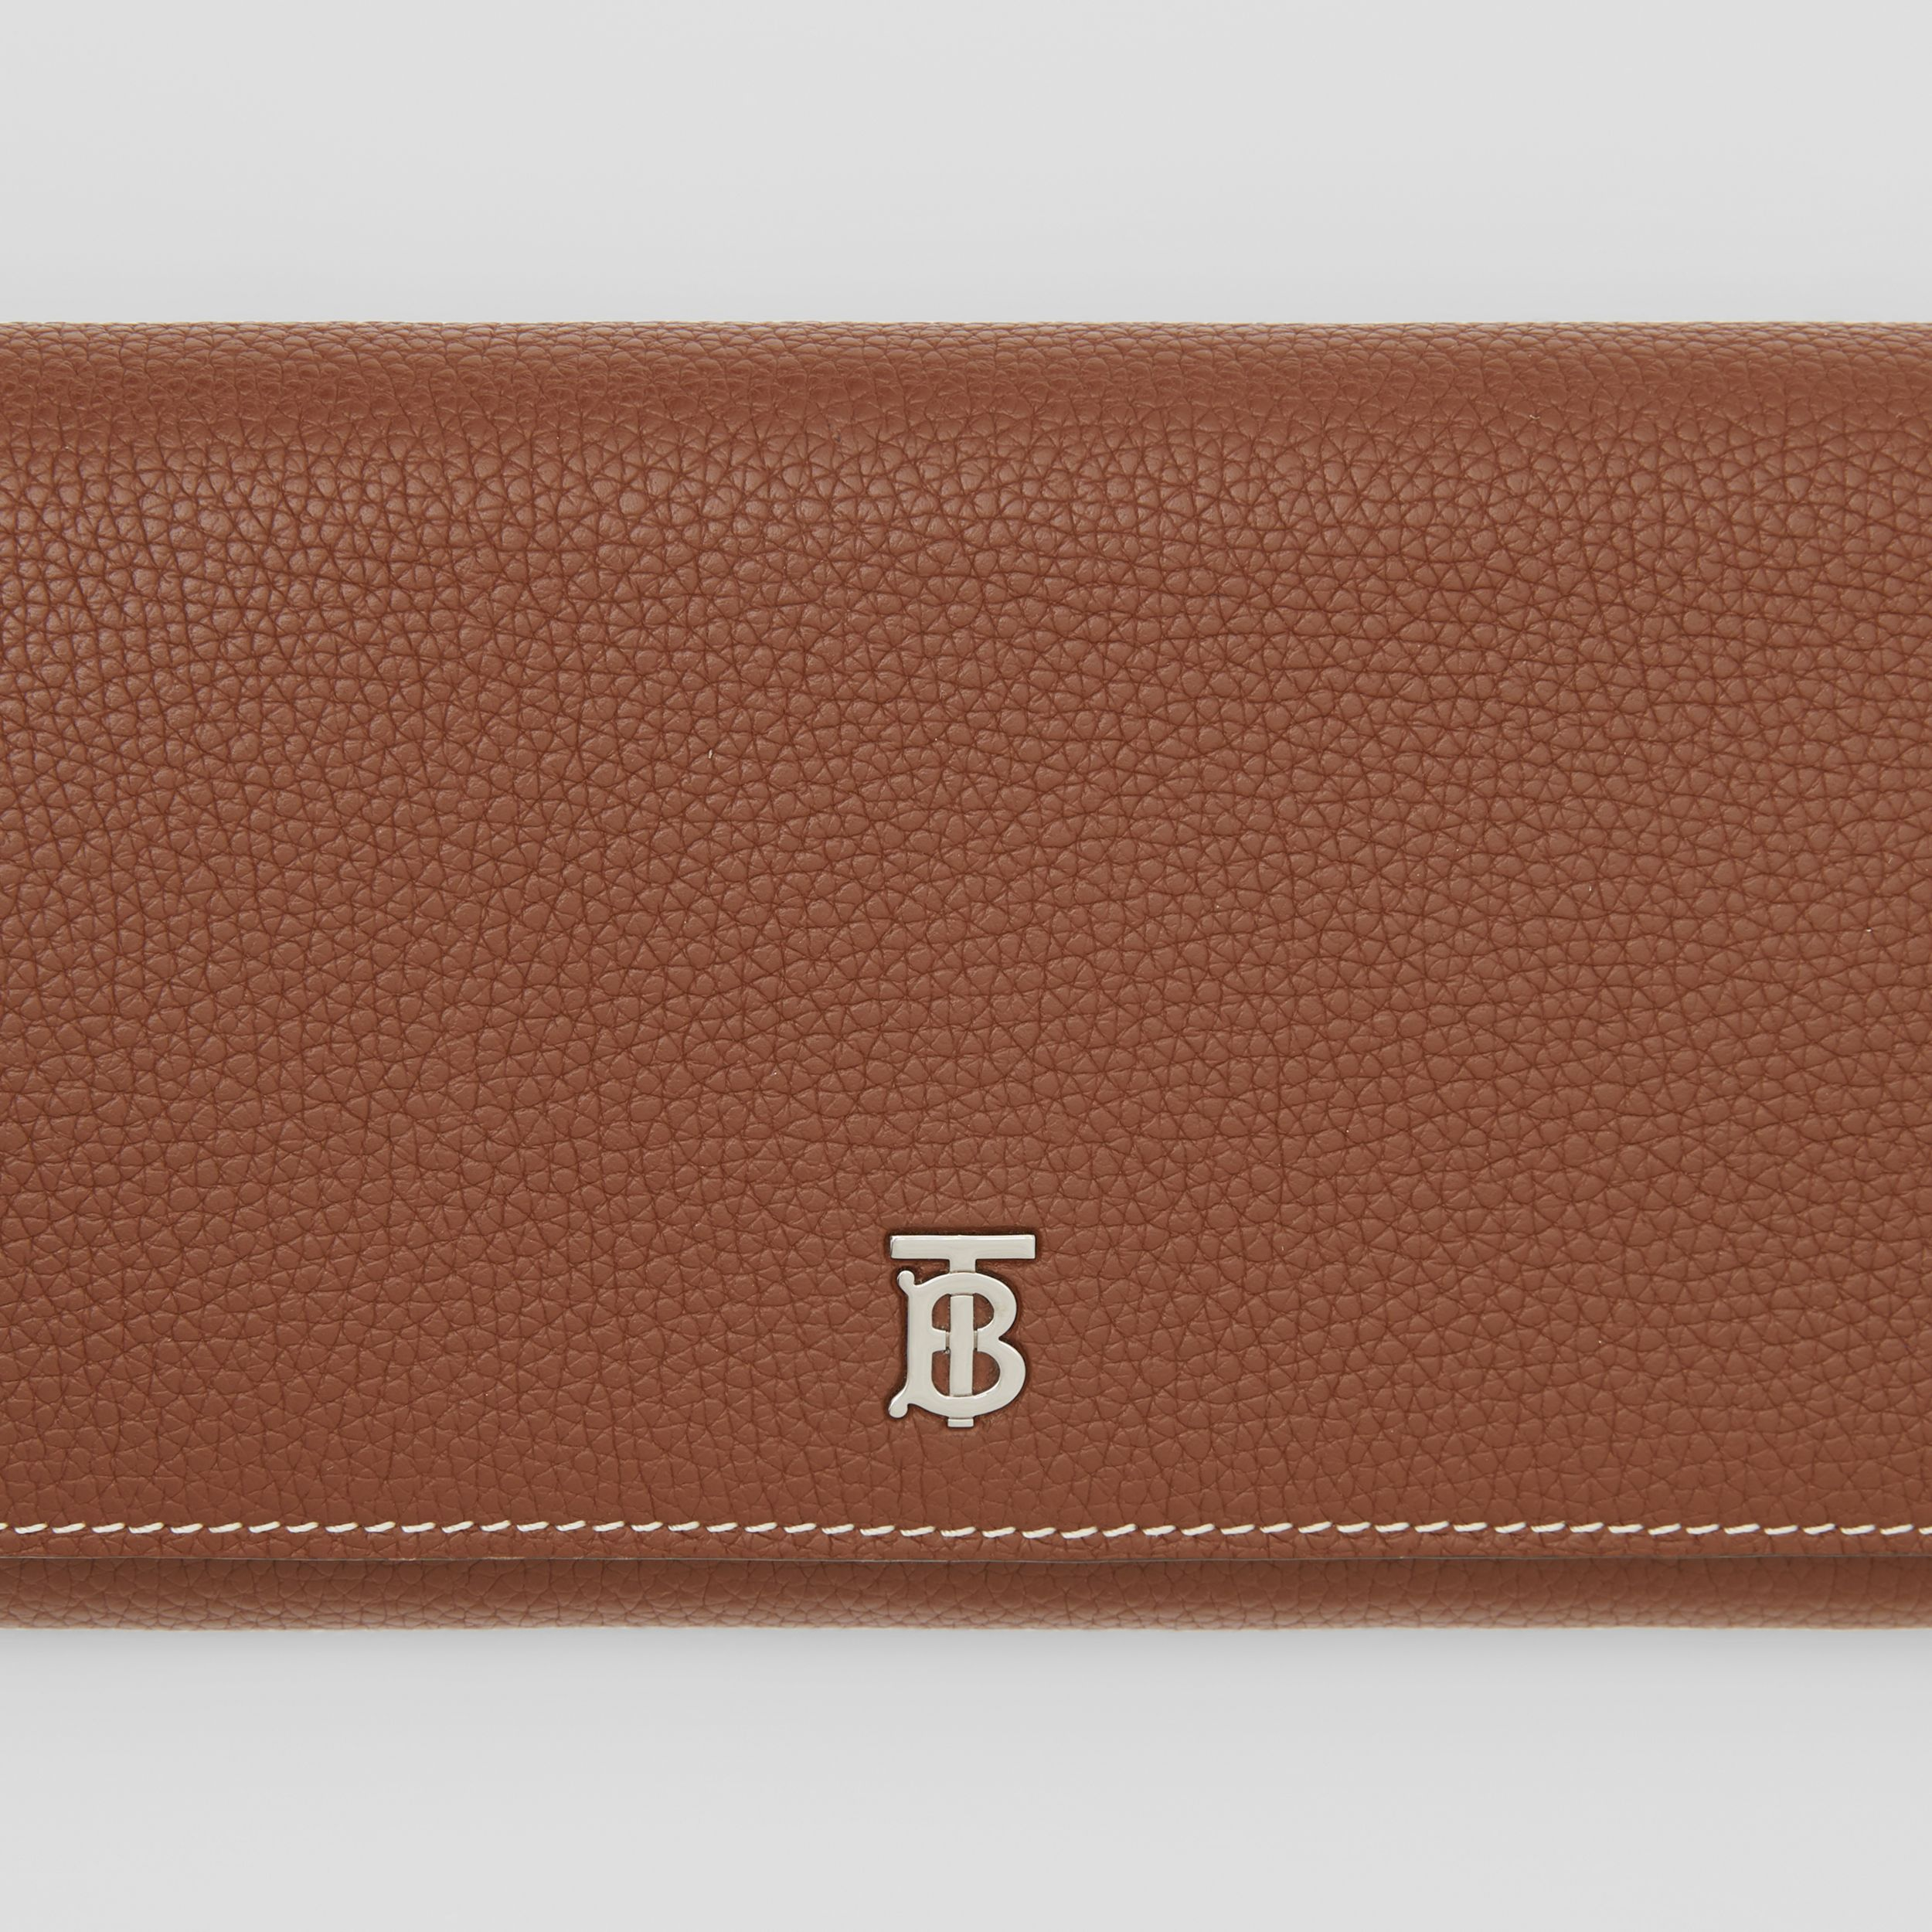 Grainy Leather Wallet with Detachable Strap in Tan | Burberry - 2